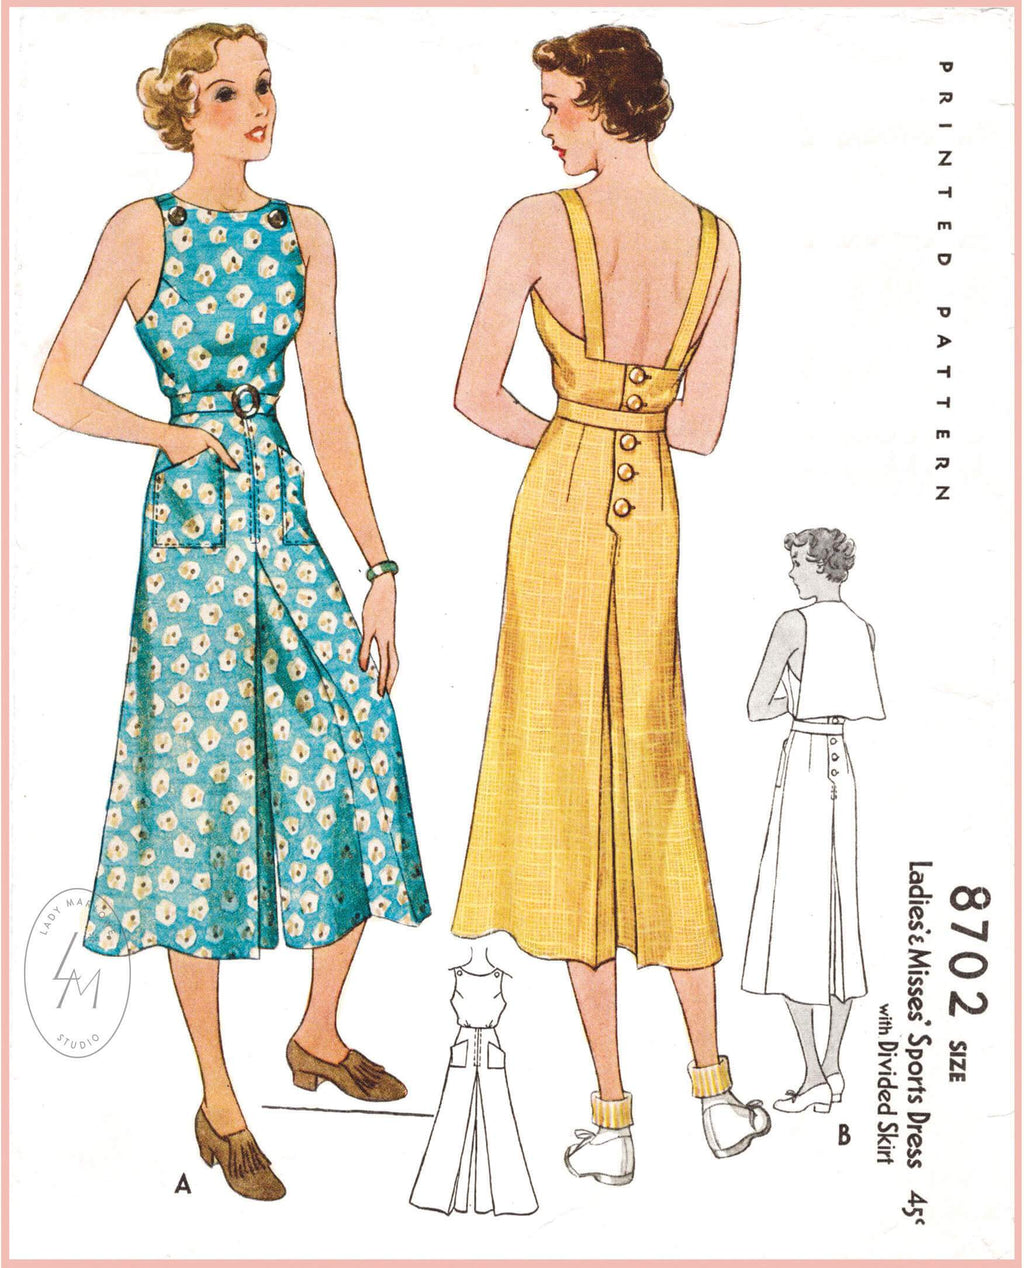 McCall 8702 1930s vintage sewing pattern 1930 30s playsuit